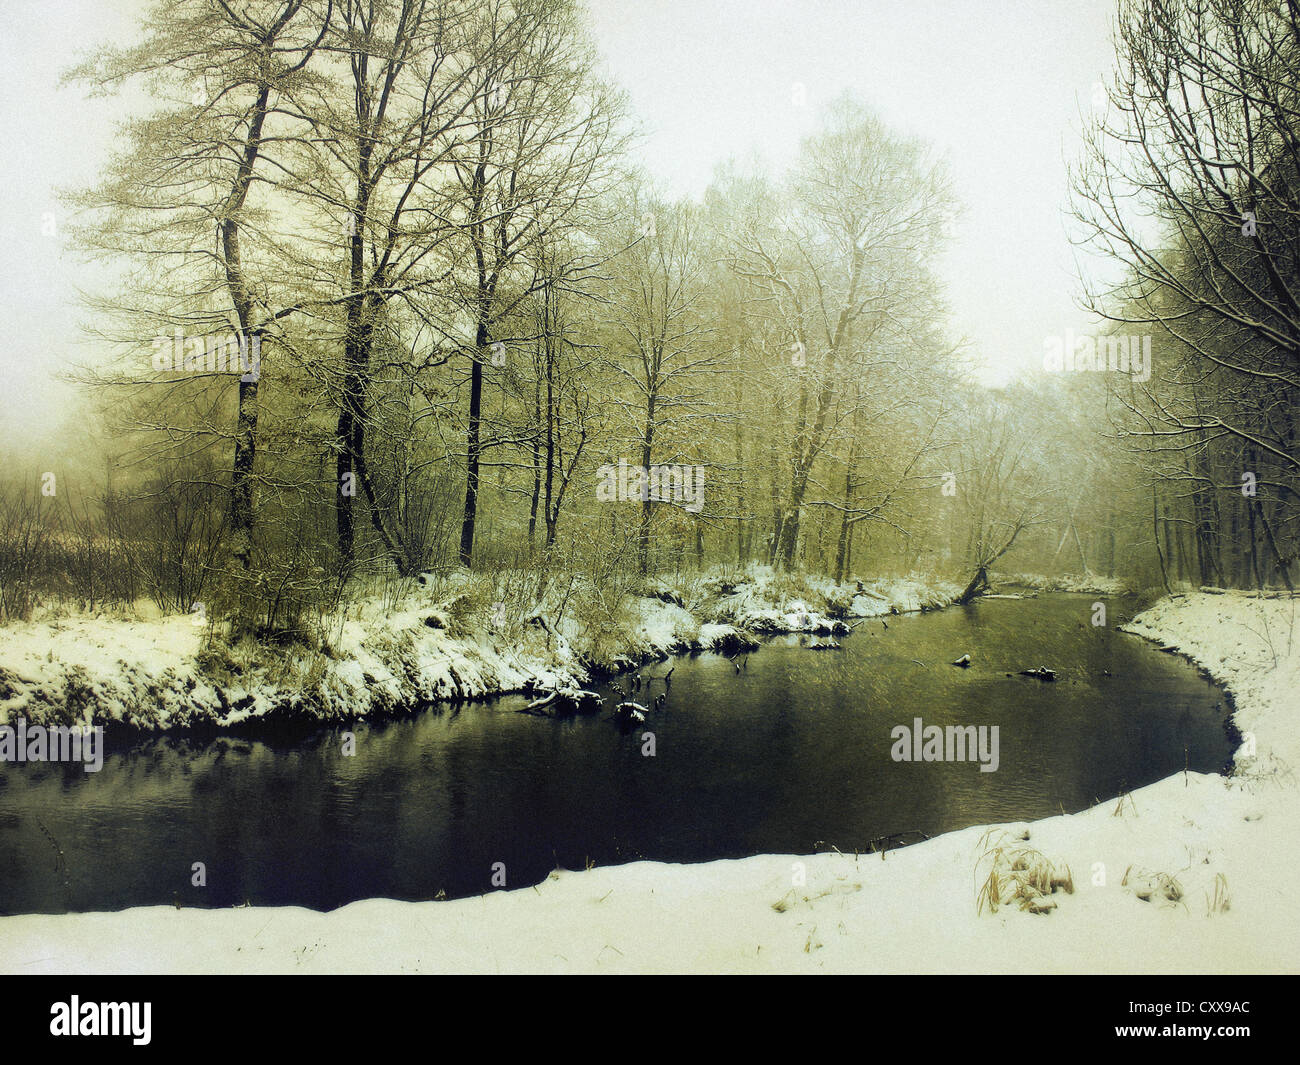 A landscape with a river bank in the front, and woods in the background, all covered with snow in a warm tonal palette. - Stock Image